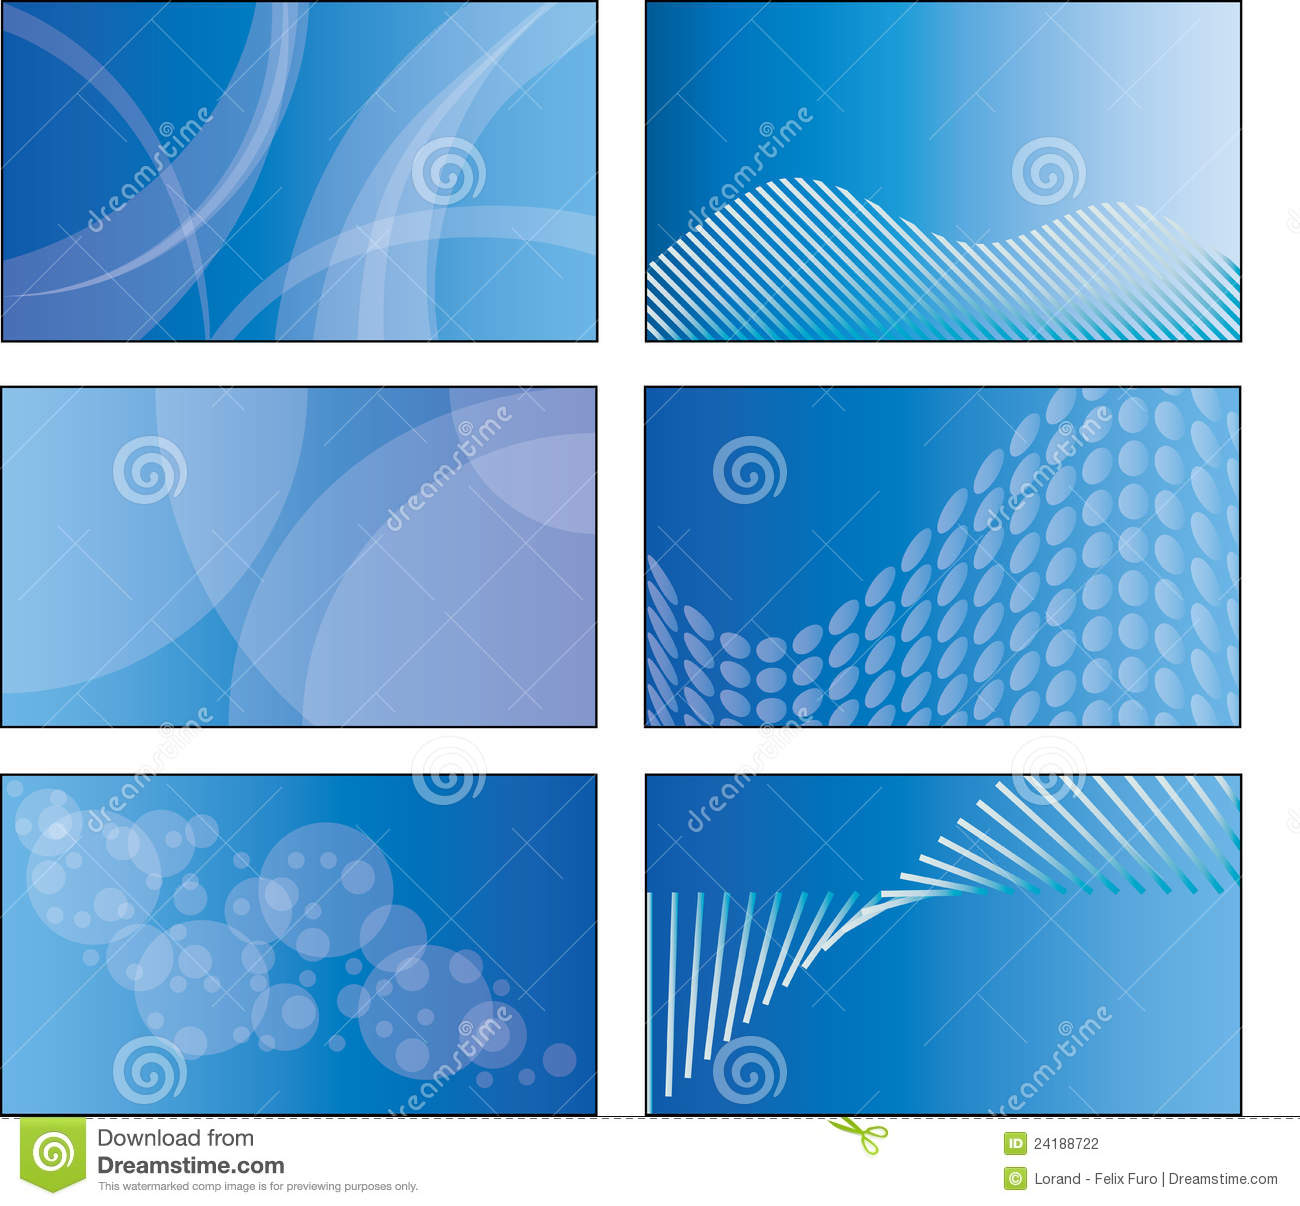 6 blue business card template designs stock vector illustration of 6 blue business card template designs cheaphphosting Gallery